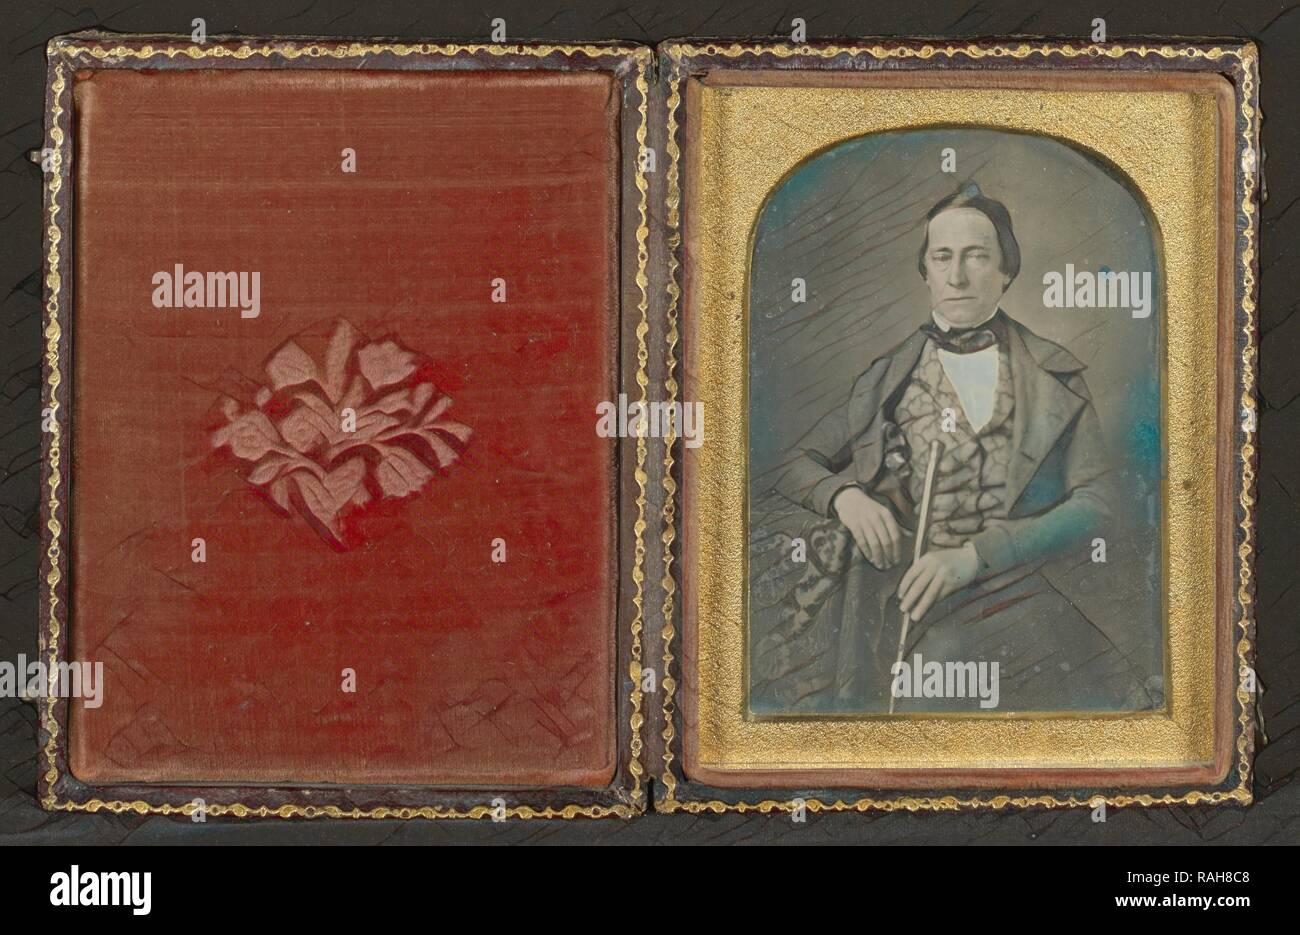 Portrait of a Man in Gold-tinted Waistcoat, Mexico, about 1850s, Hand-colored Daguerreotype. Reimagined - Stock Image